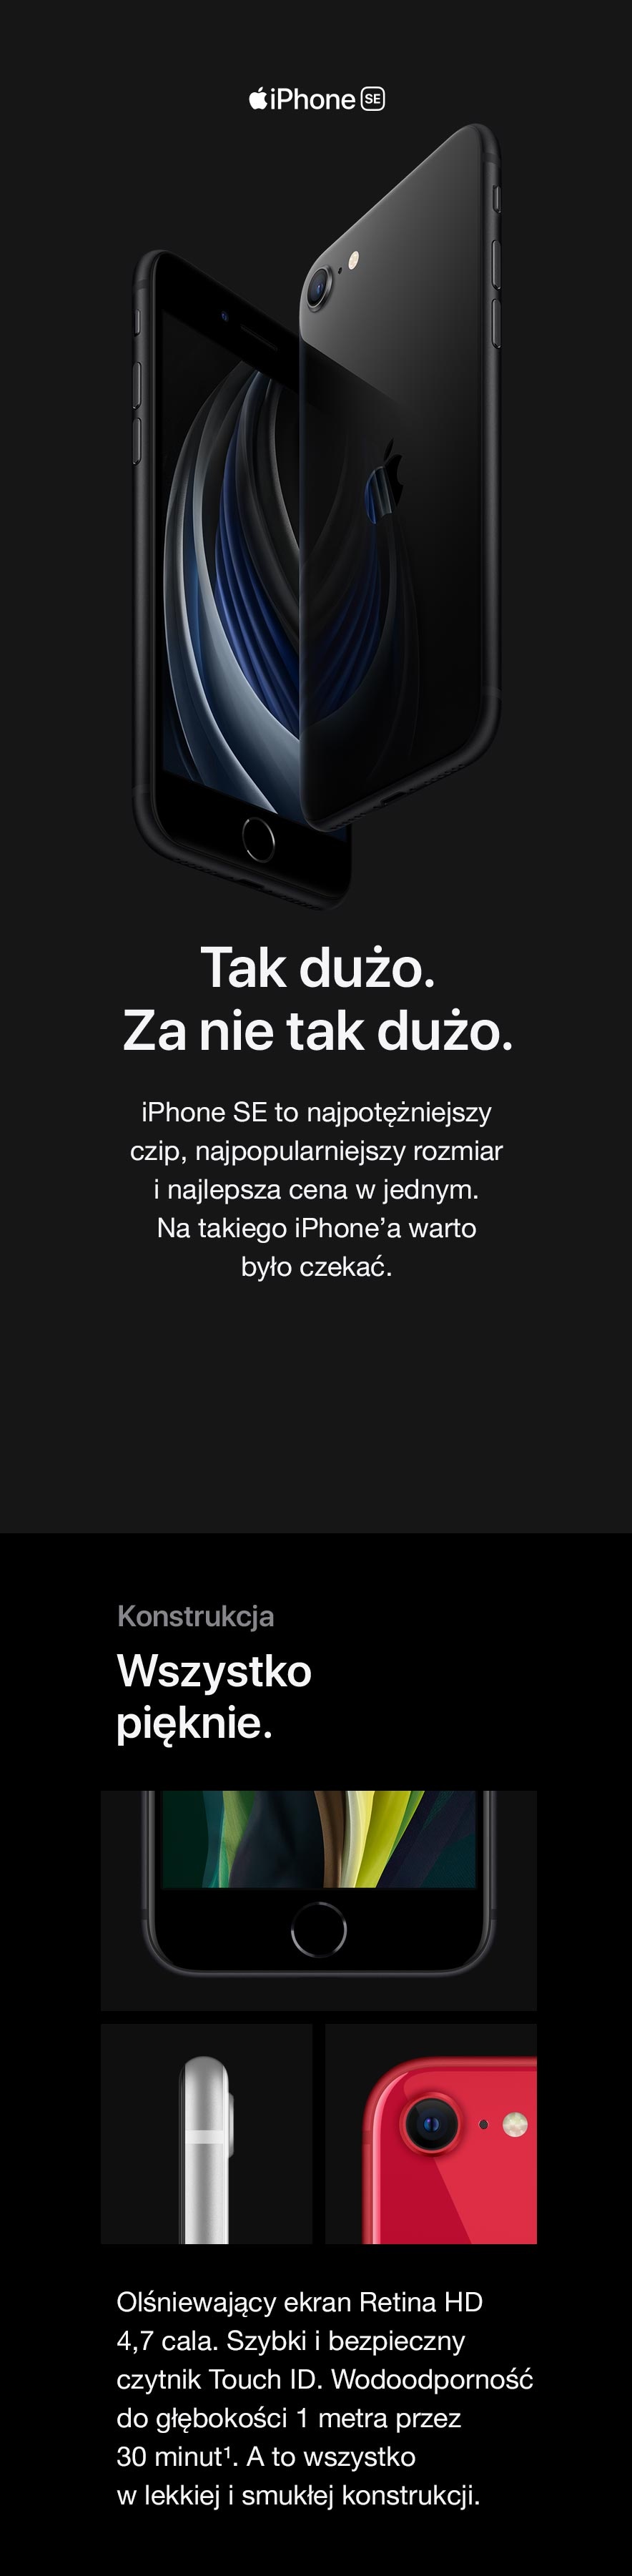 Nowy iPhone SE